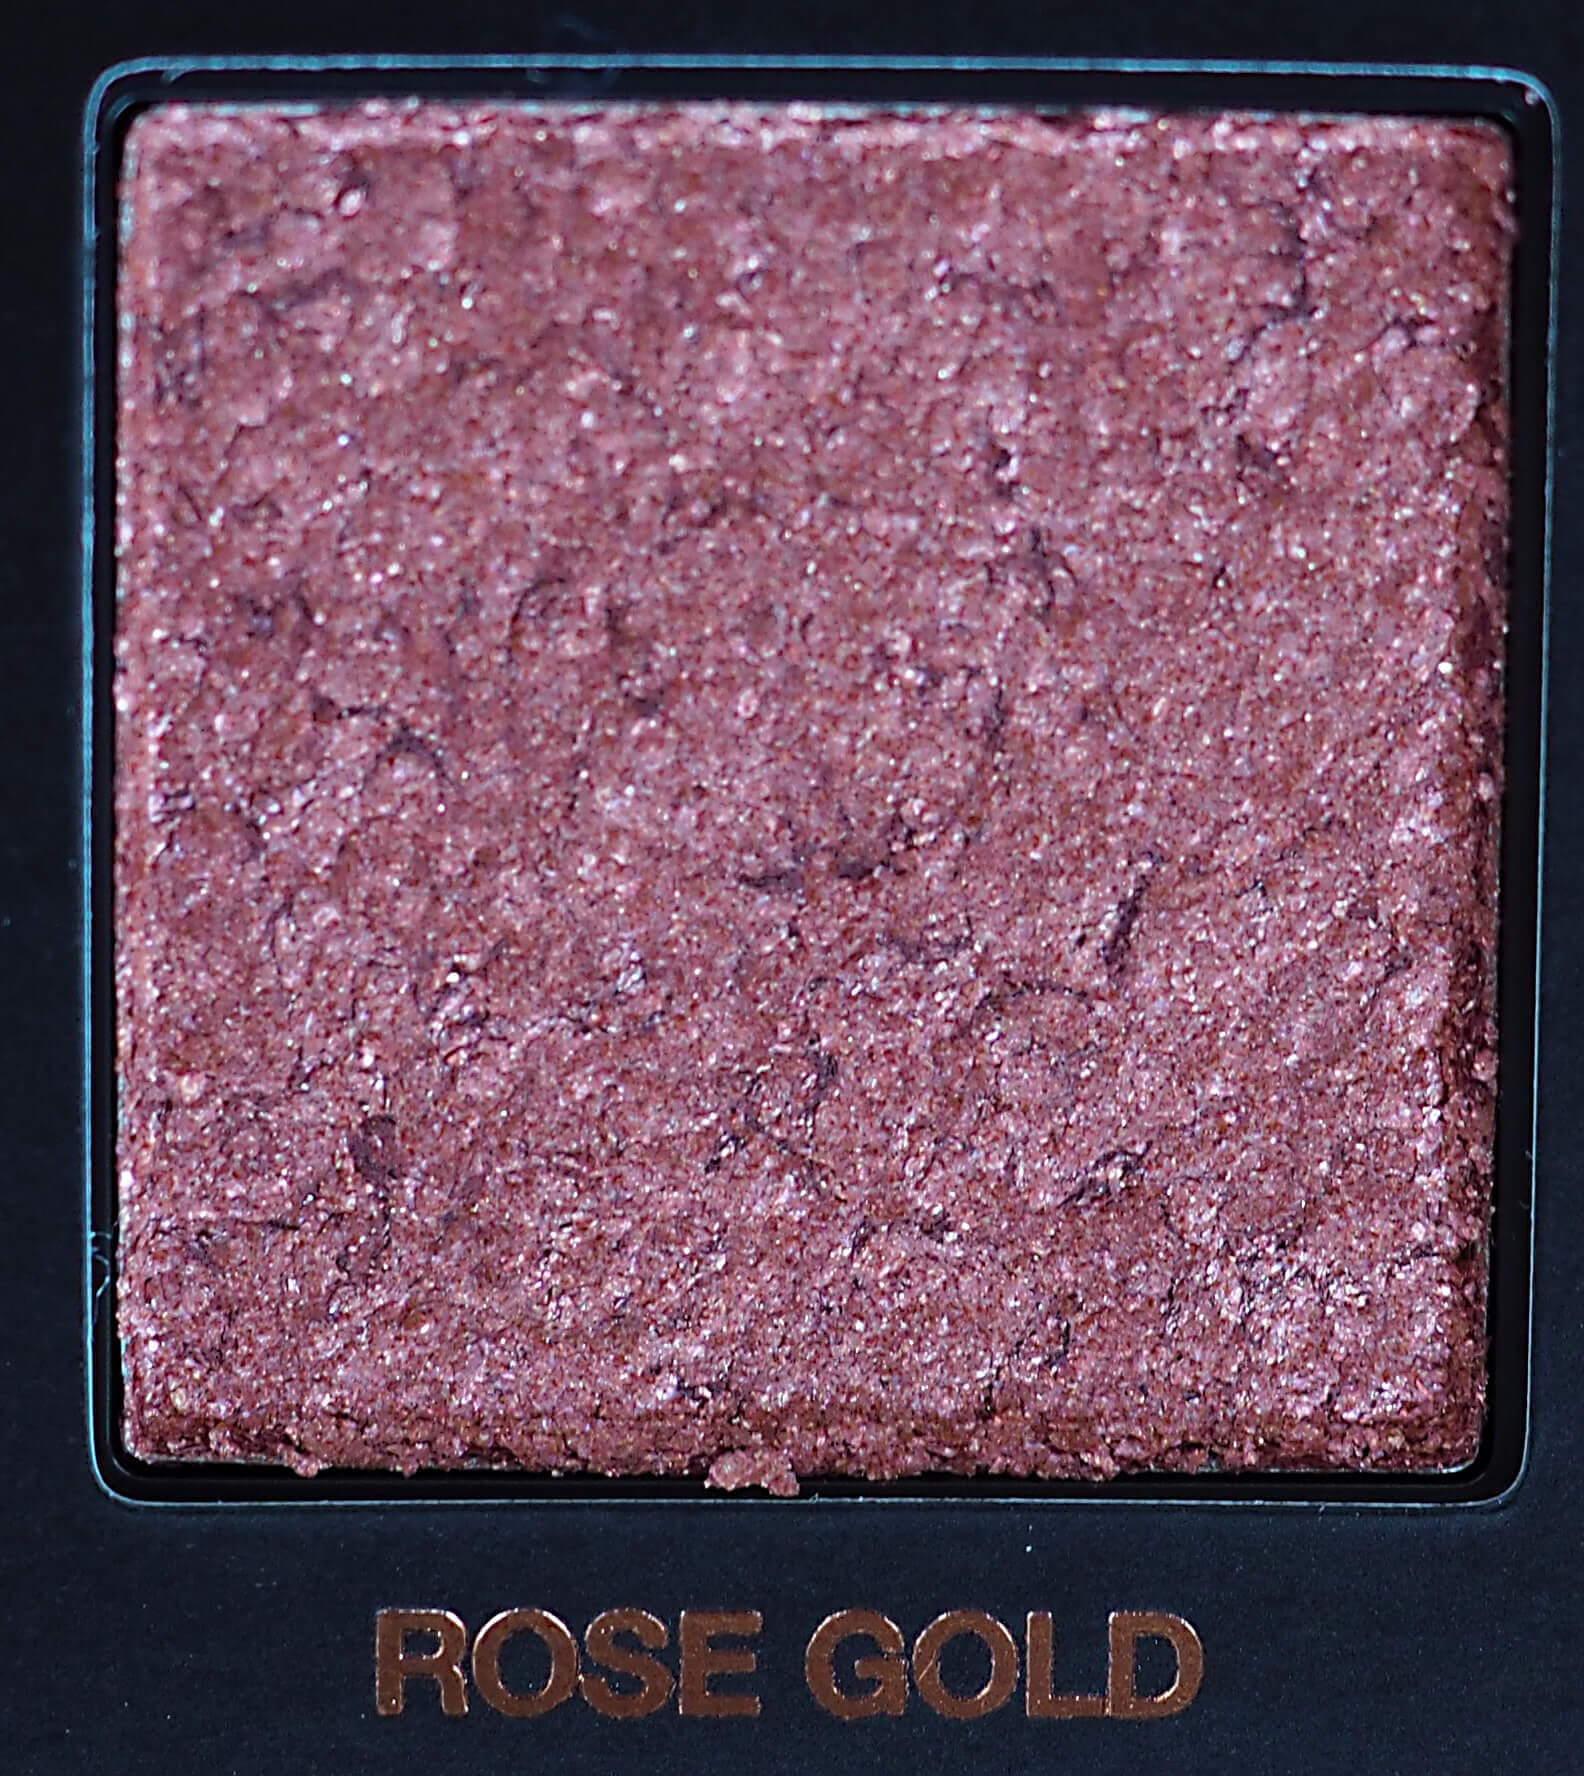 ROSE GOLD HUDA ROSE GOLD EDITION